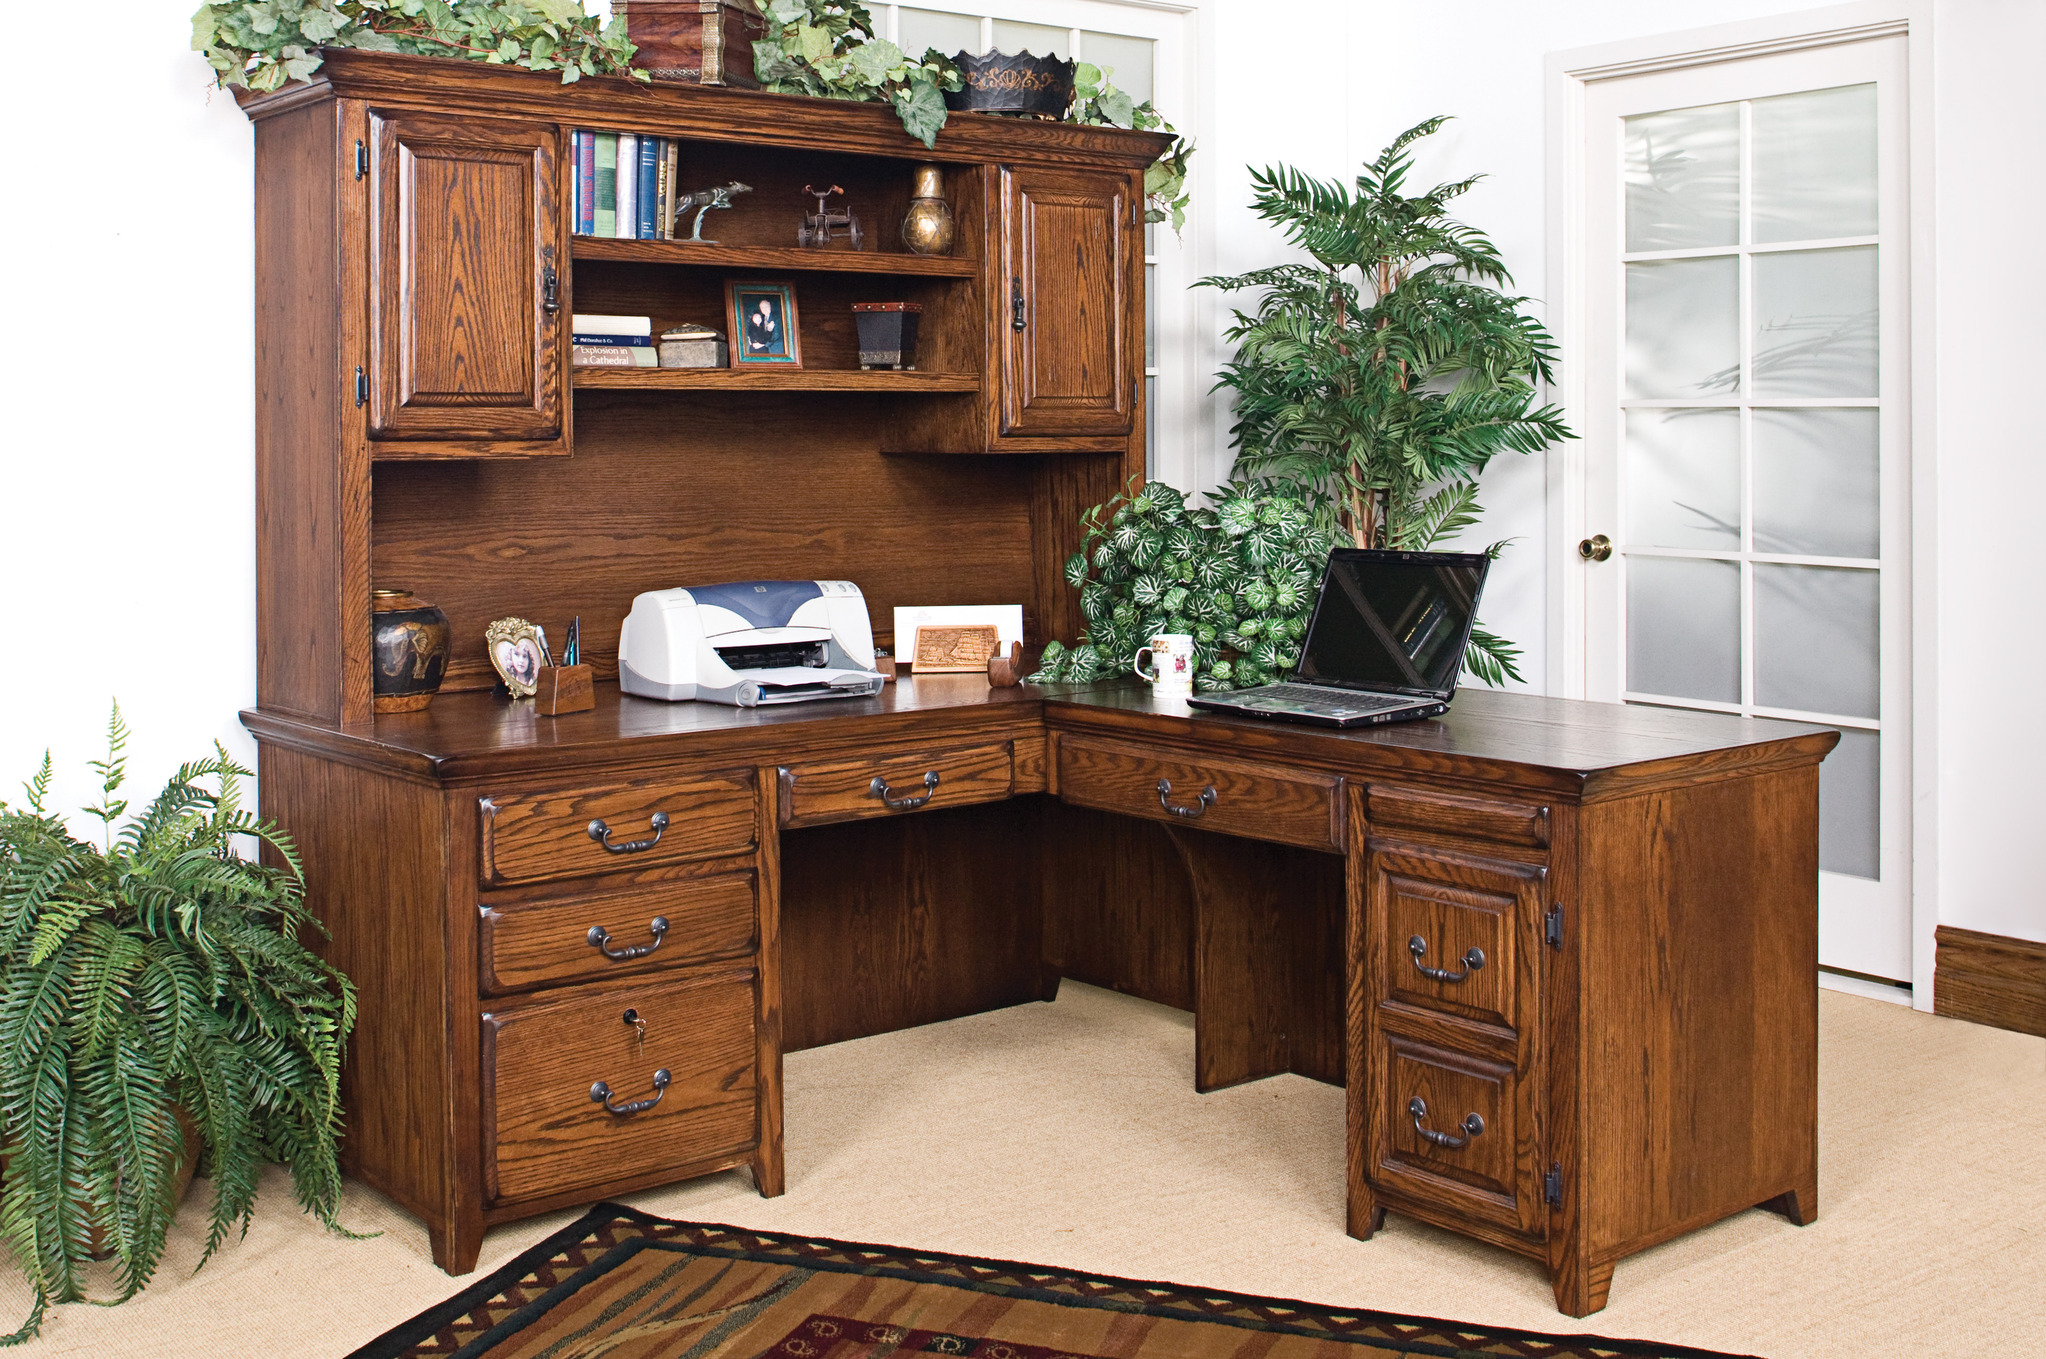 l shaped Desk With Hutch and drawer before the white wall for home office decor ideas